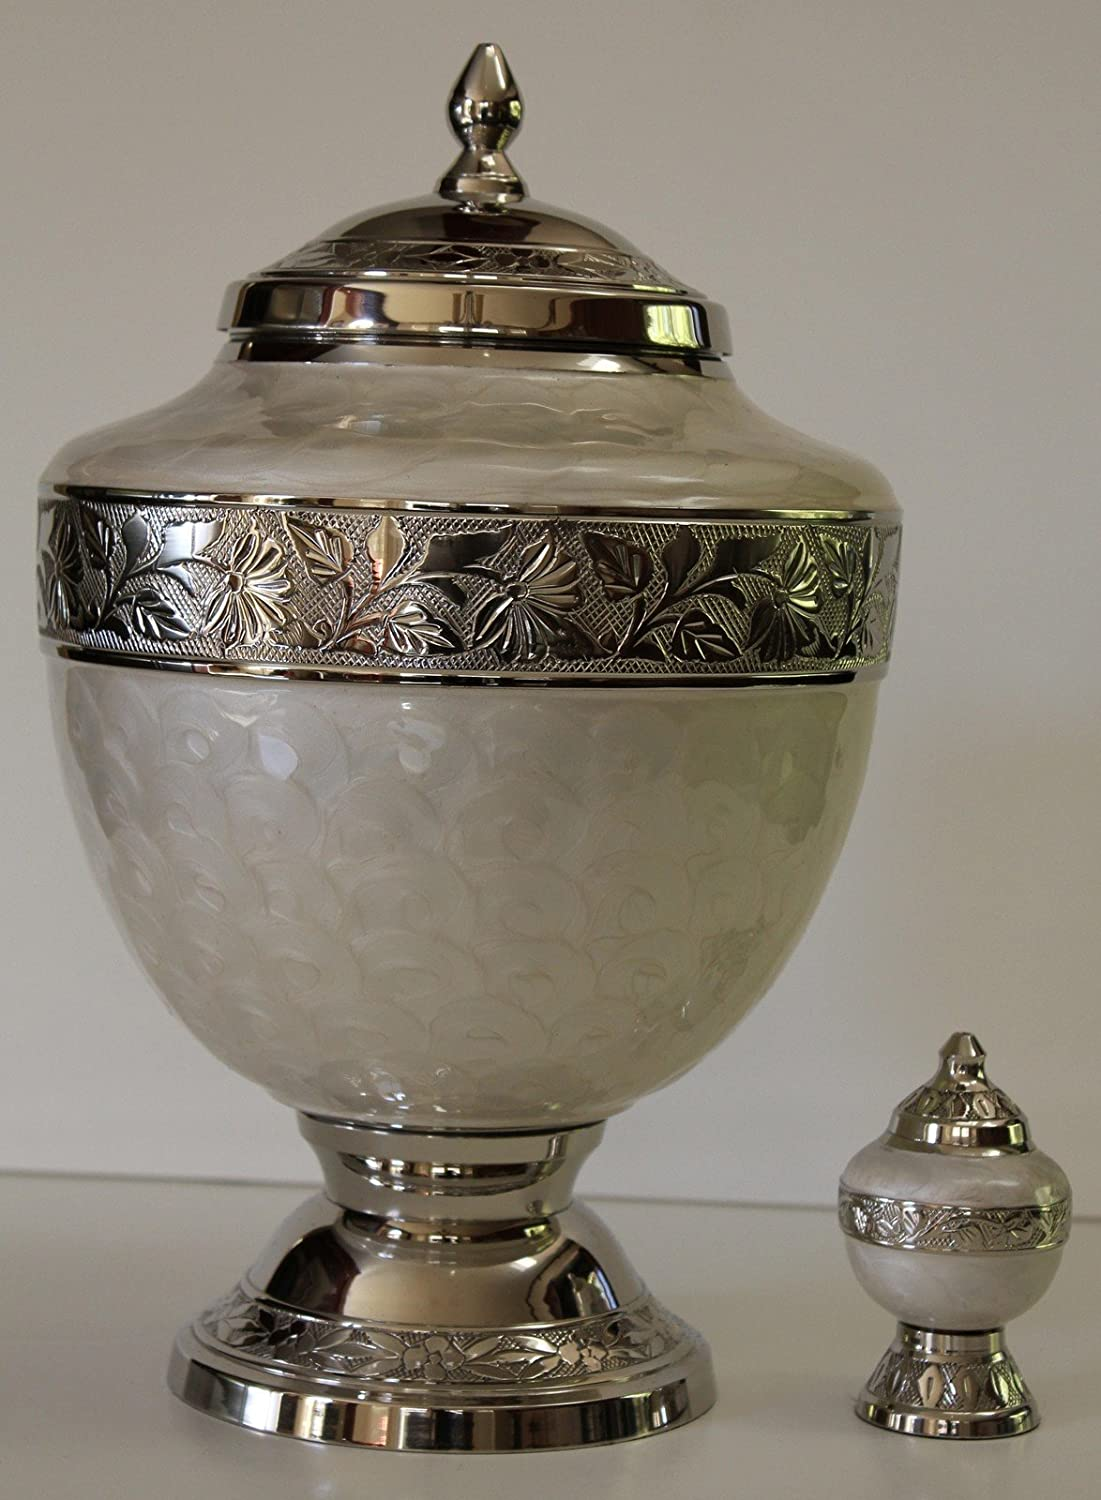 Cremation Urns, Adult Funeral Cremation Urn With Keepsake, Urn for Human Ashes NWA